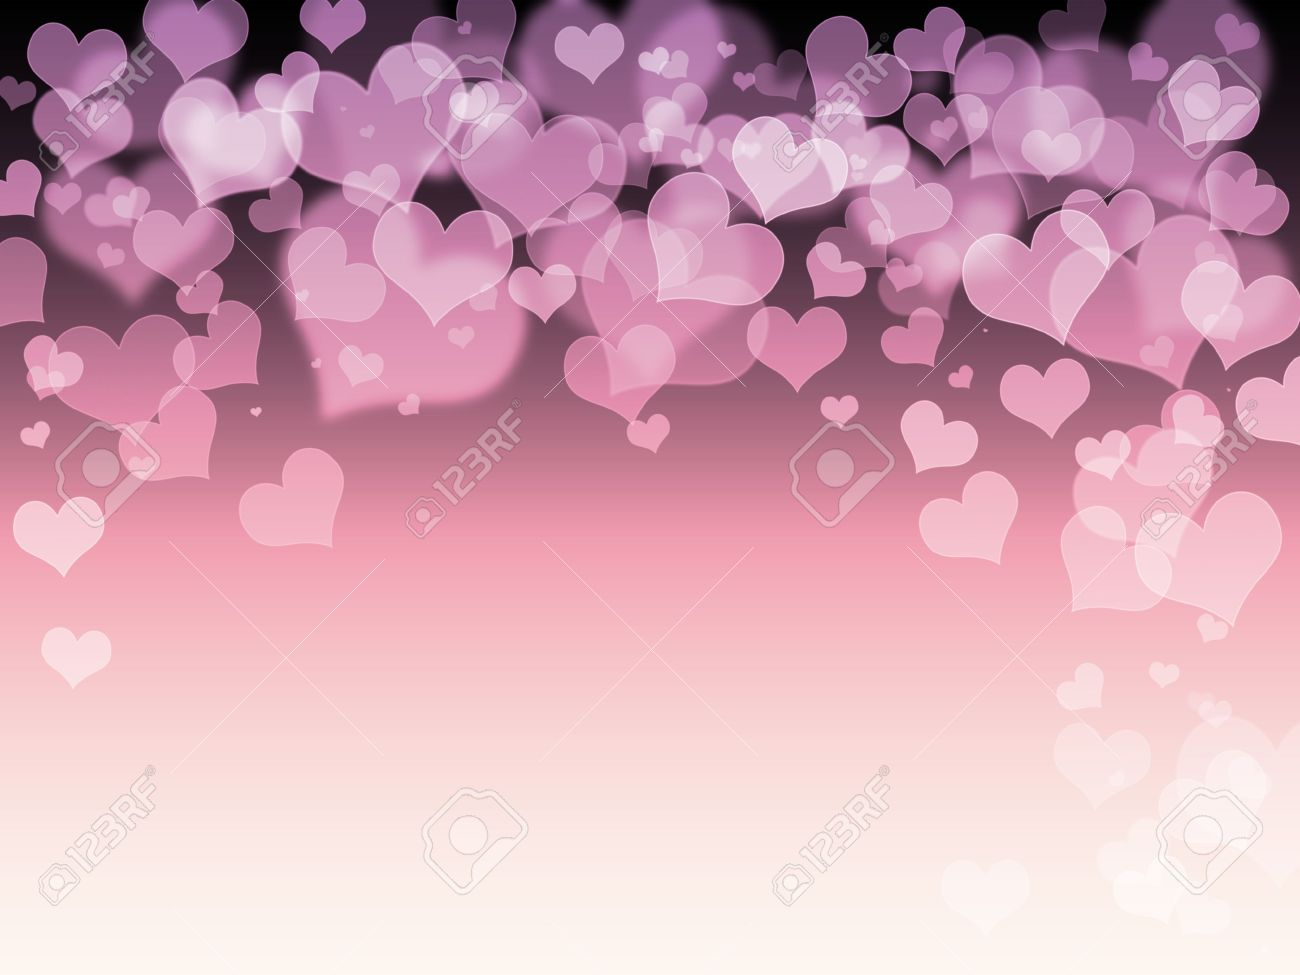 romance hearts love background stock photo picture and royalty free